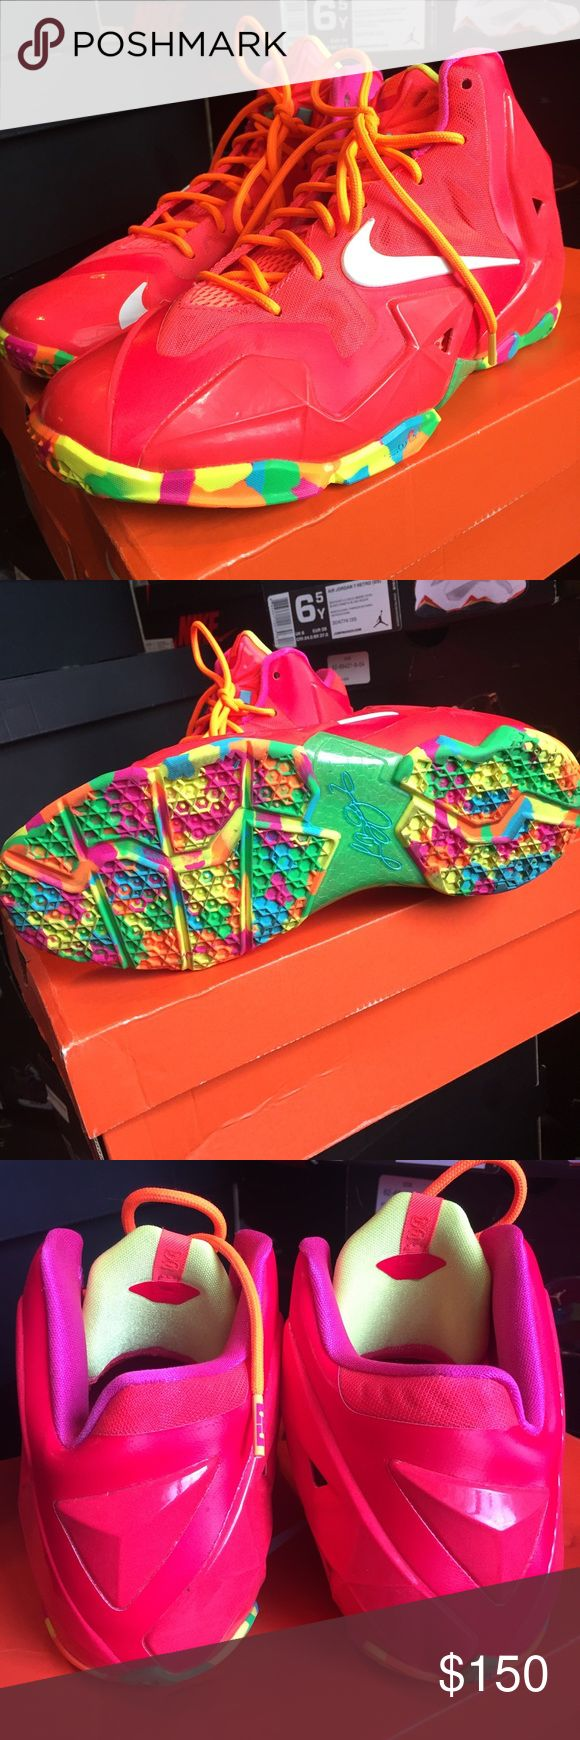 "Lebron ""fruity pebbles"" Like new condition worn once lebron Shoes Sneakers"